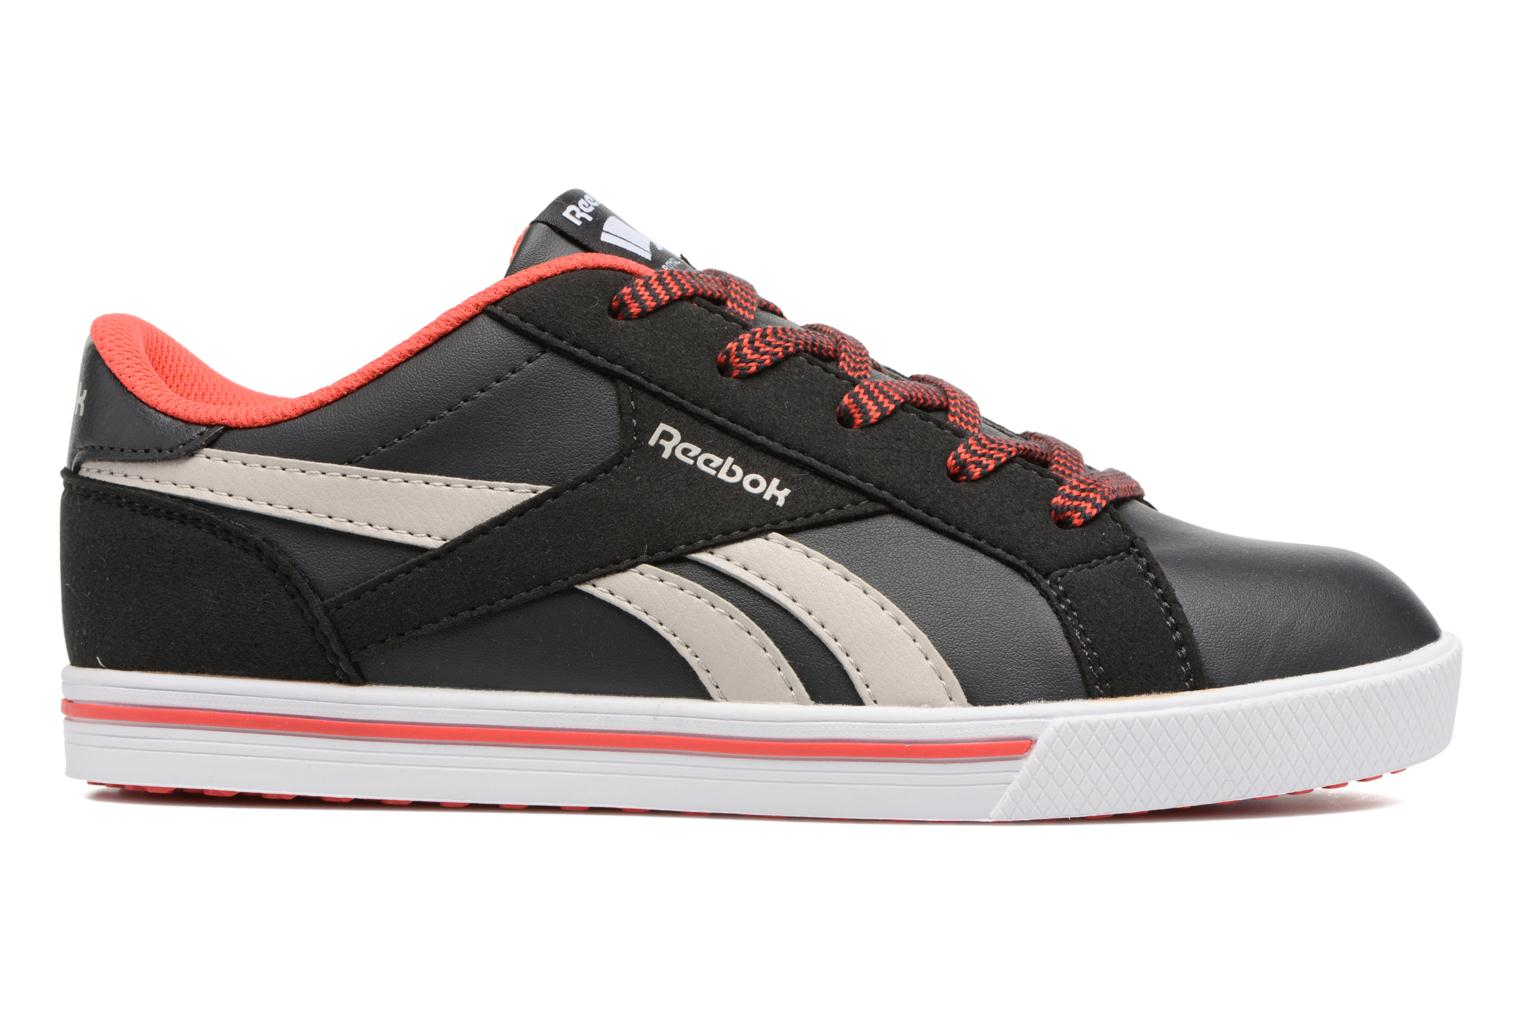 Reebok Royal Comp 2Ls Coal/Sand Stone/Dayglow Red